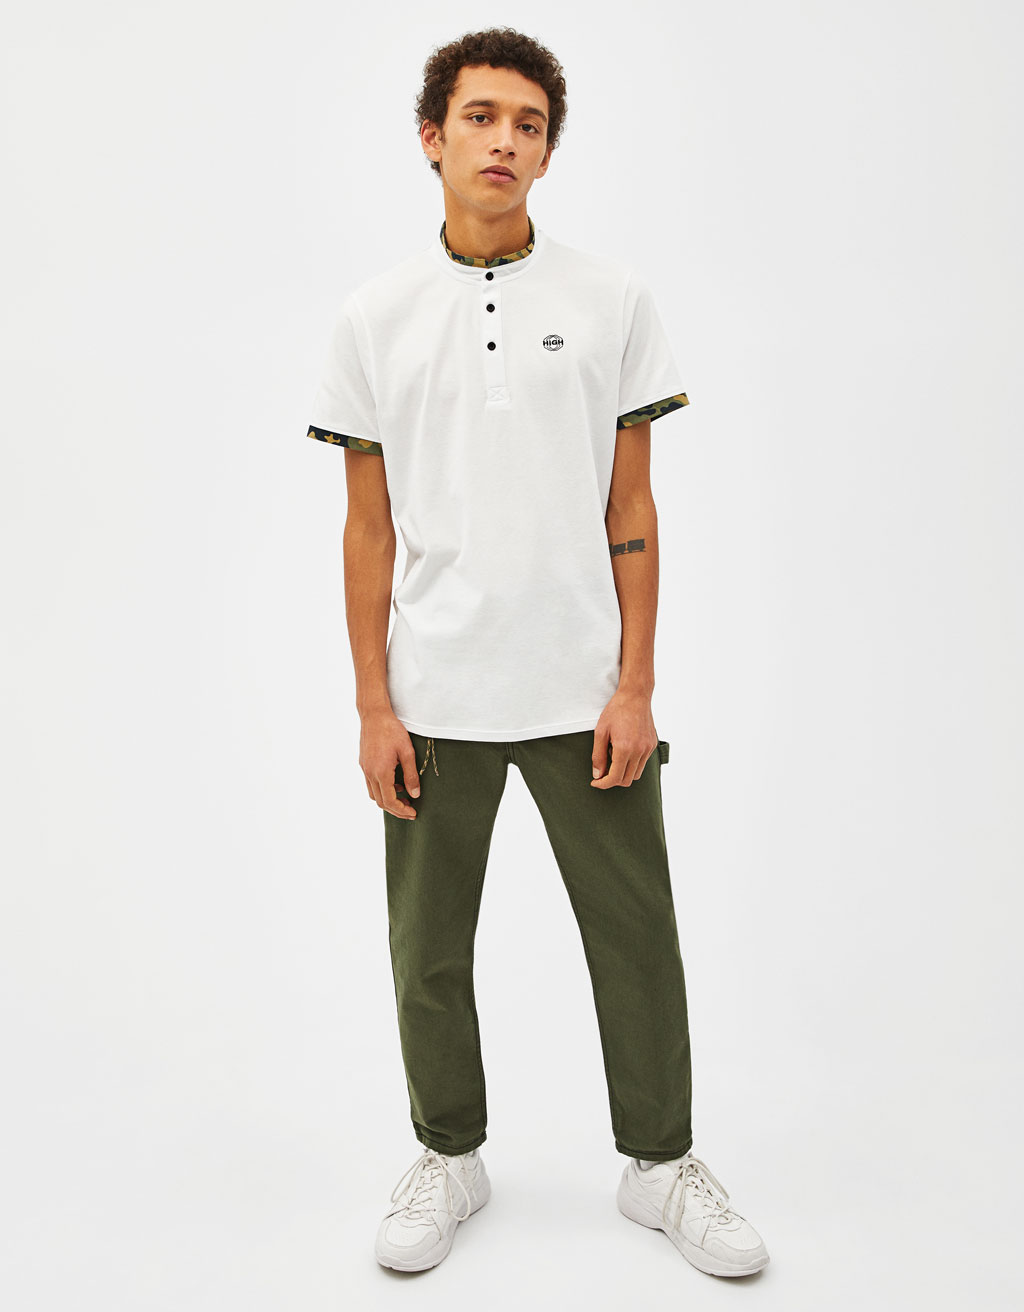 Polo shirt with a camouflage stand-up collar